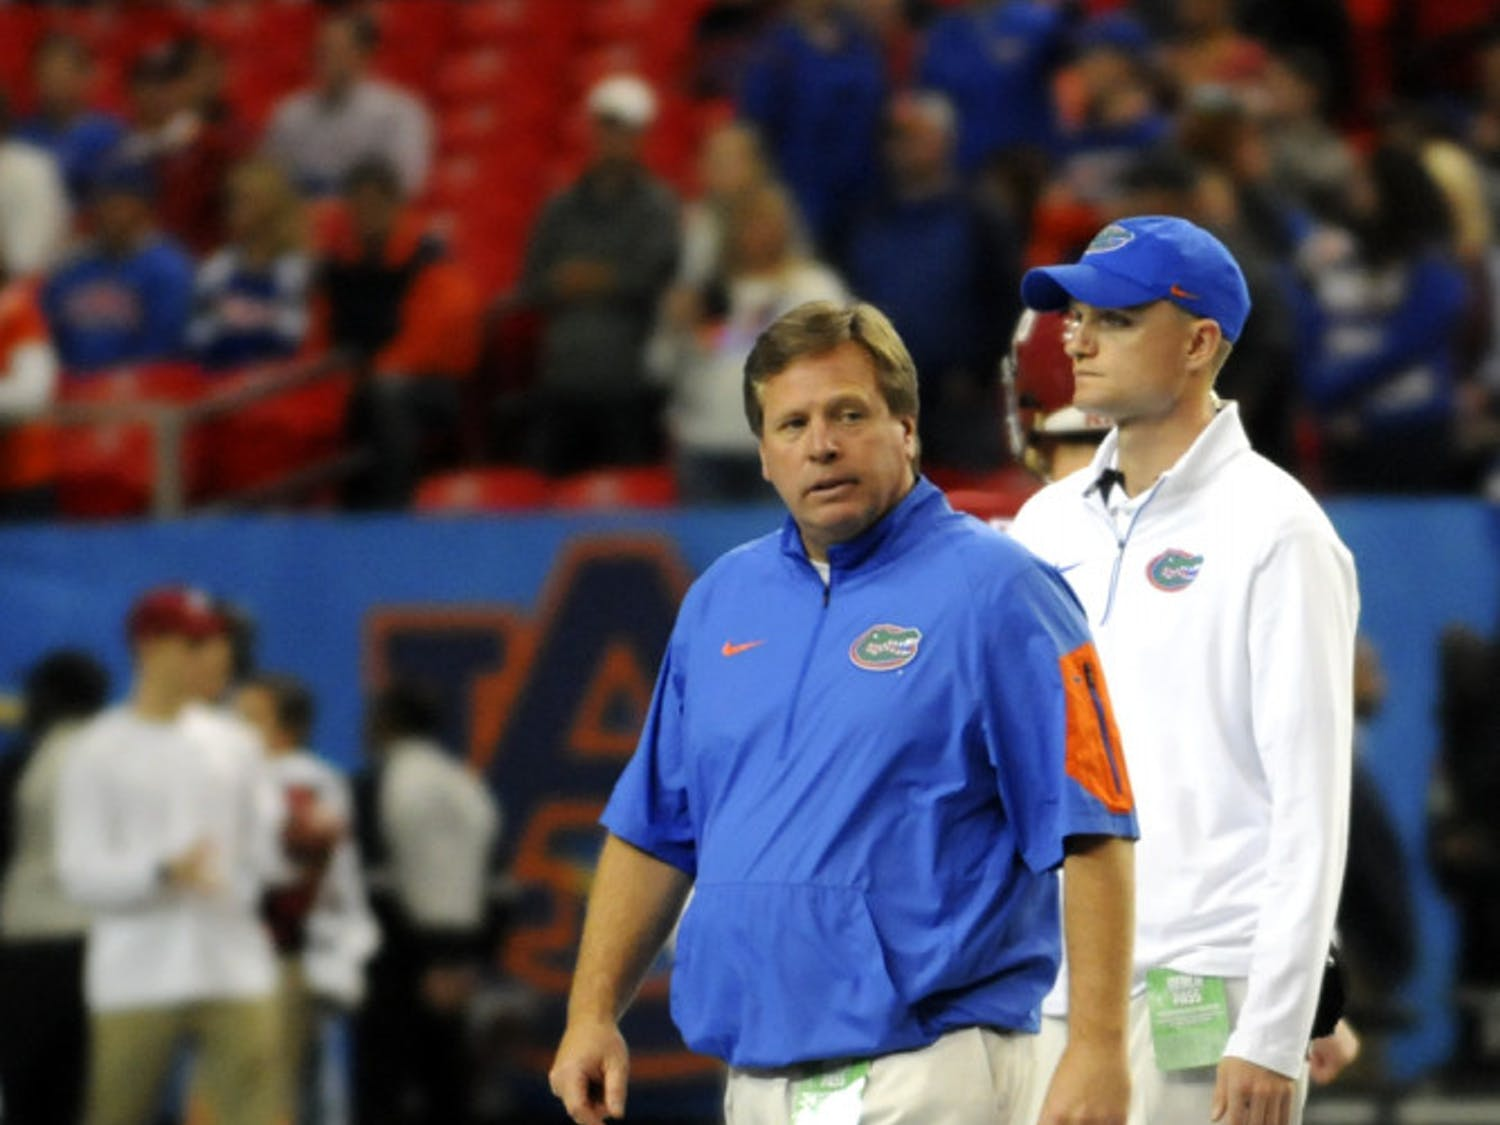 Jim McElwain looks on during Florida's 29-15 loss to Alabama in the 2015 SEC Championship Game.